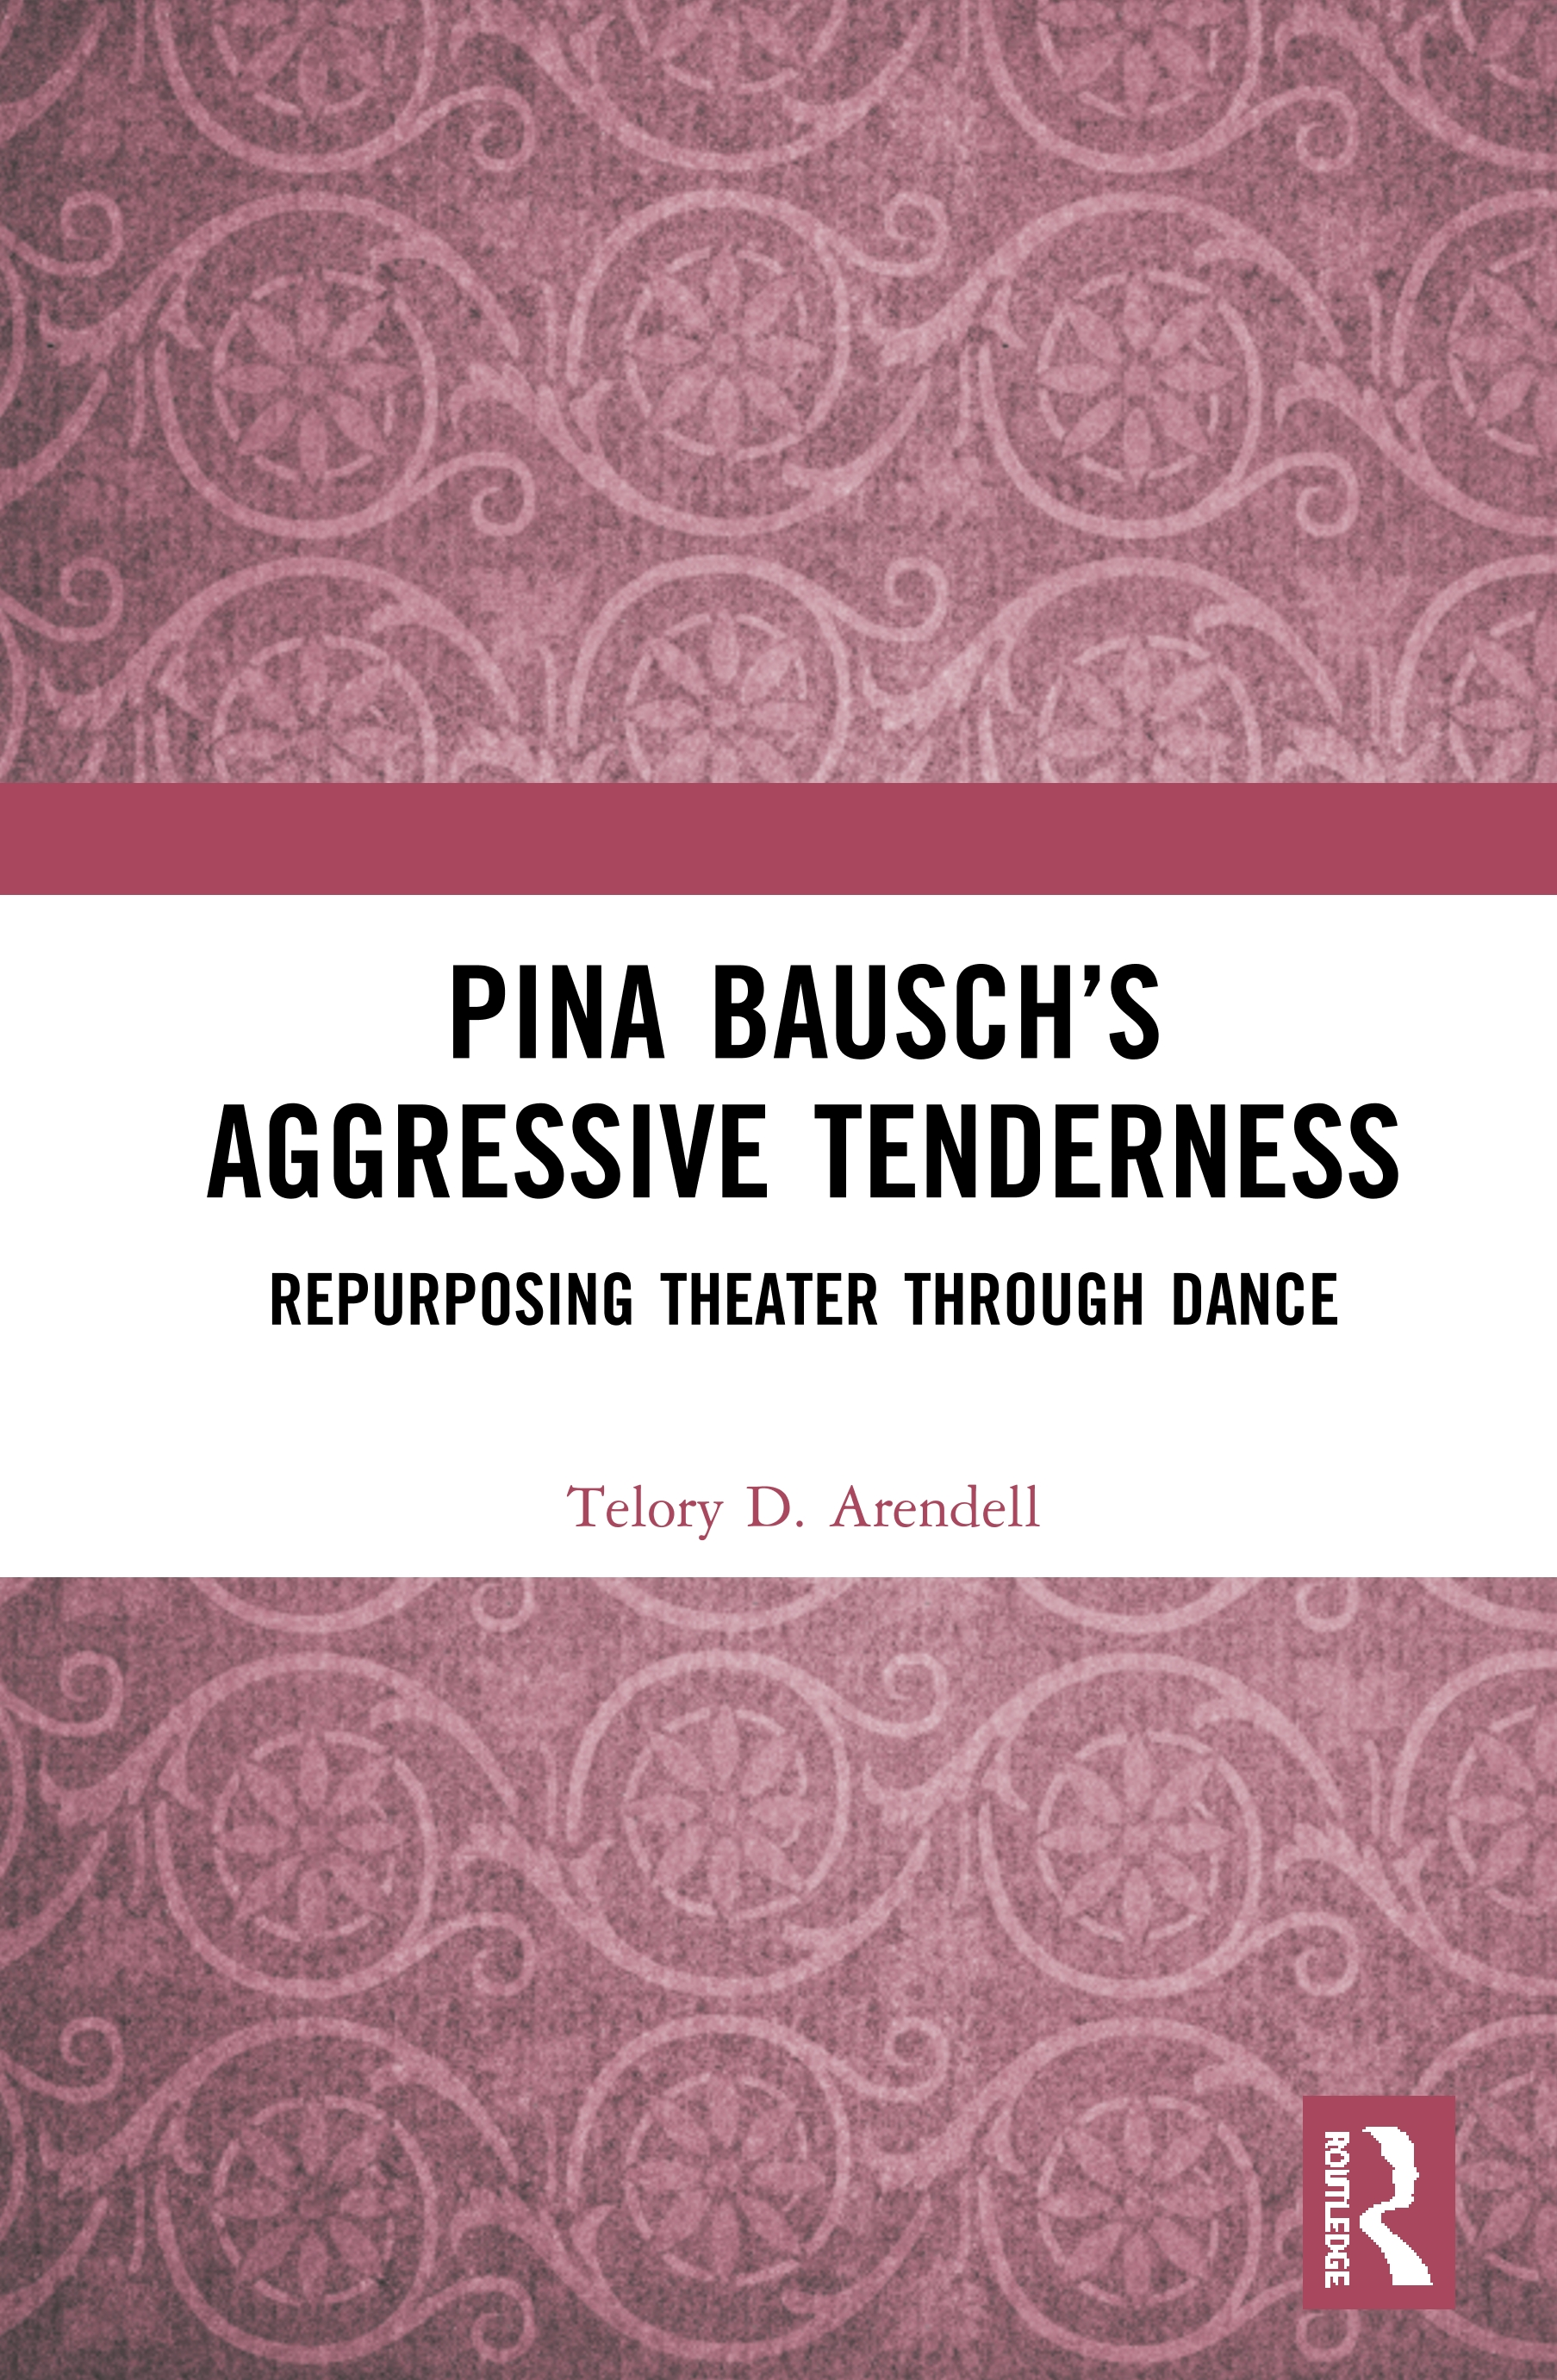 Pina Bausch's Aggressive Tenderness: Repurposing Theater through Dance book cover